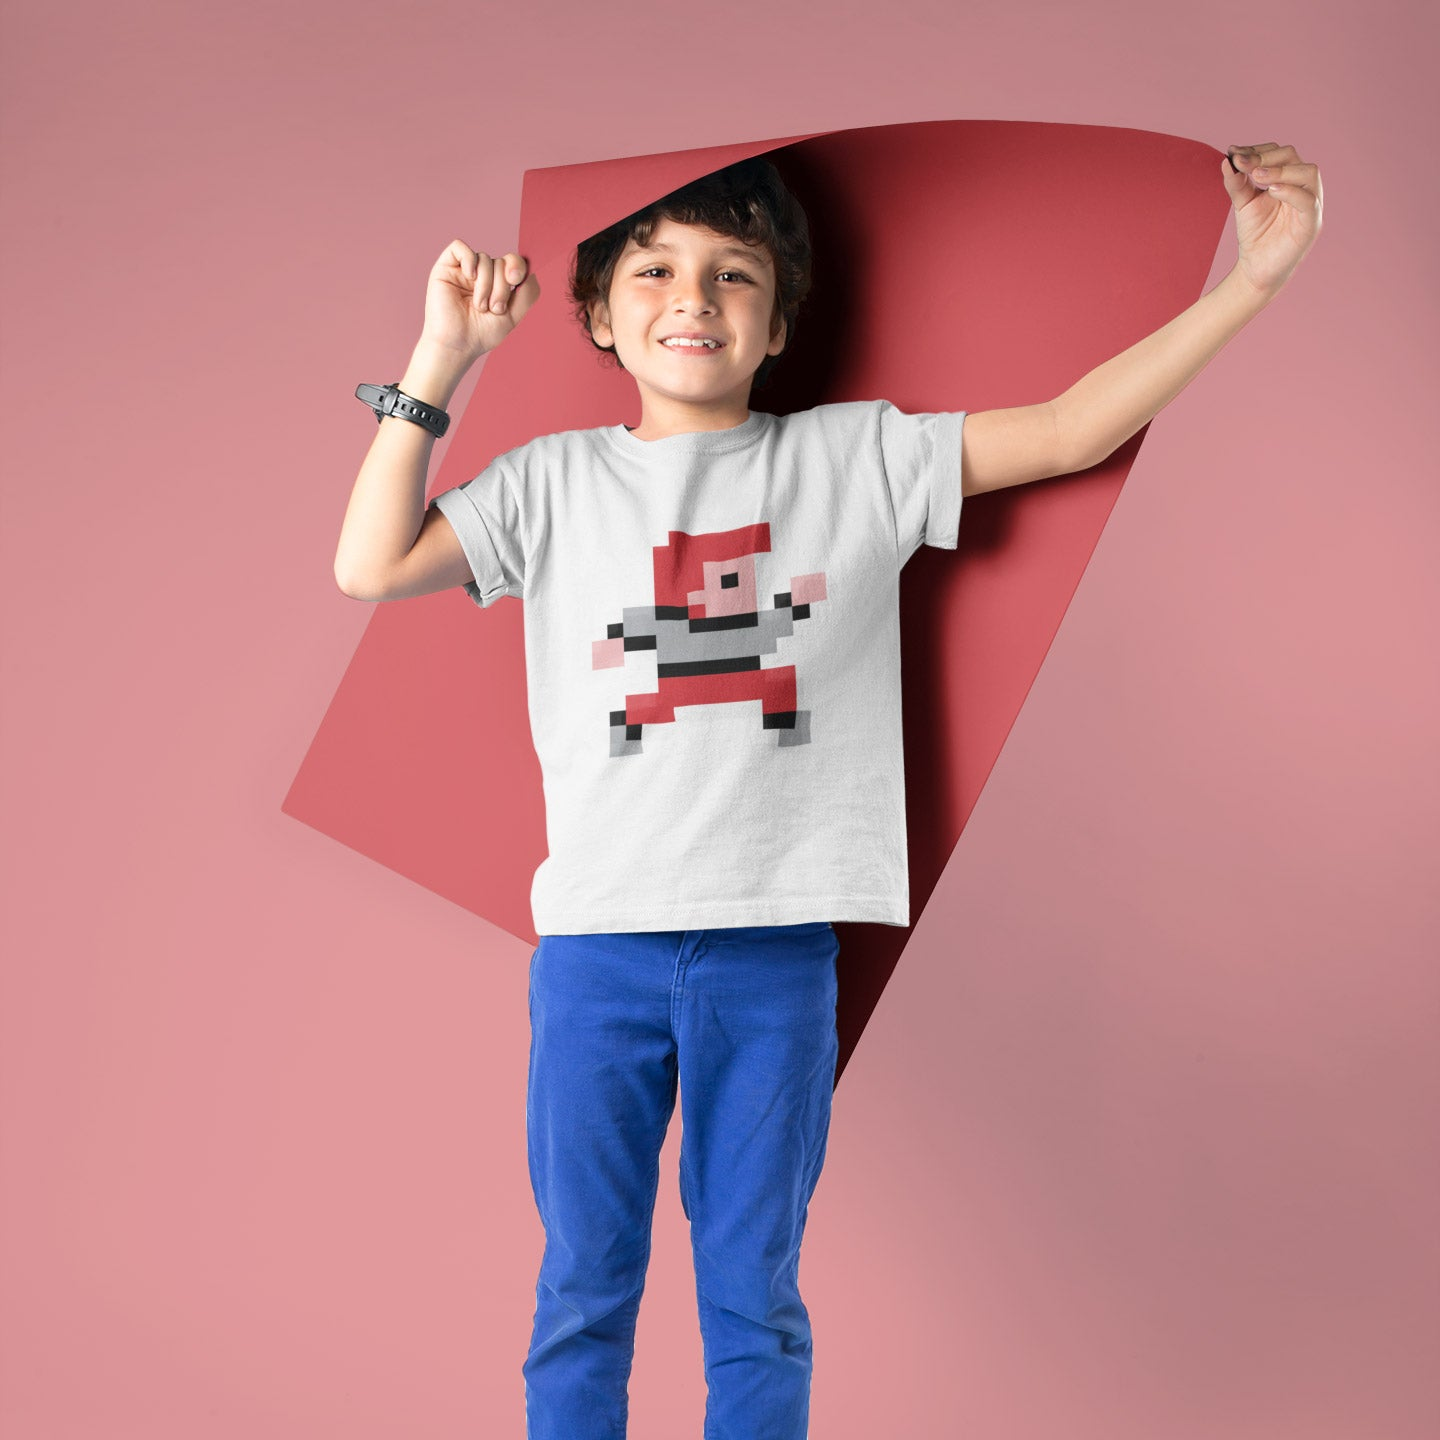 8-Bit Hero Kids T-Shirt - Space Lake